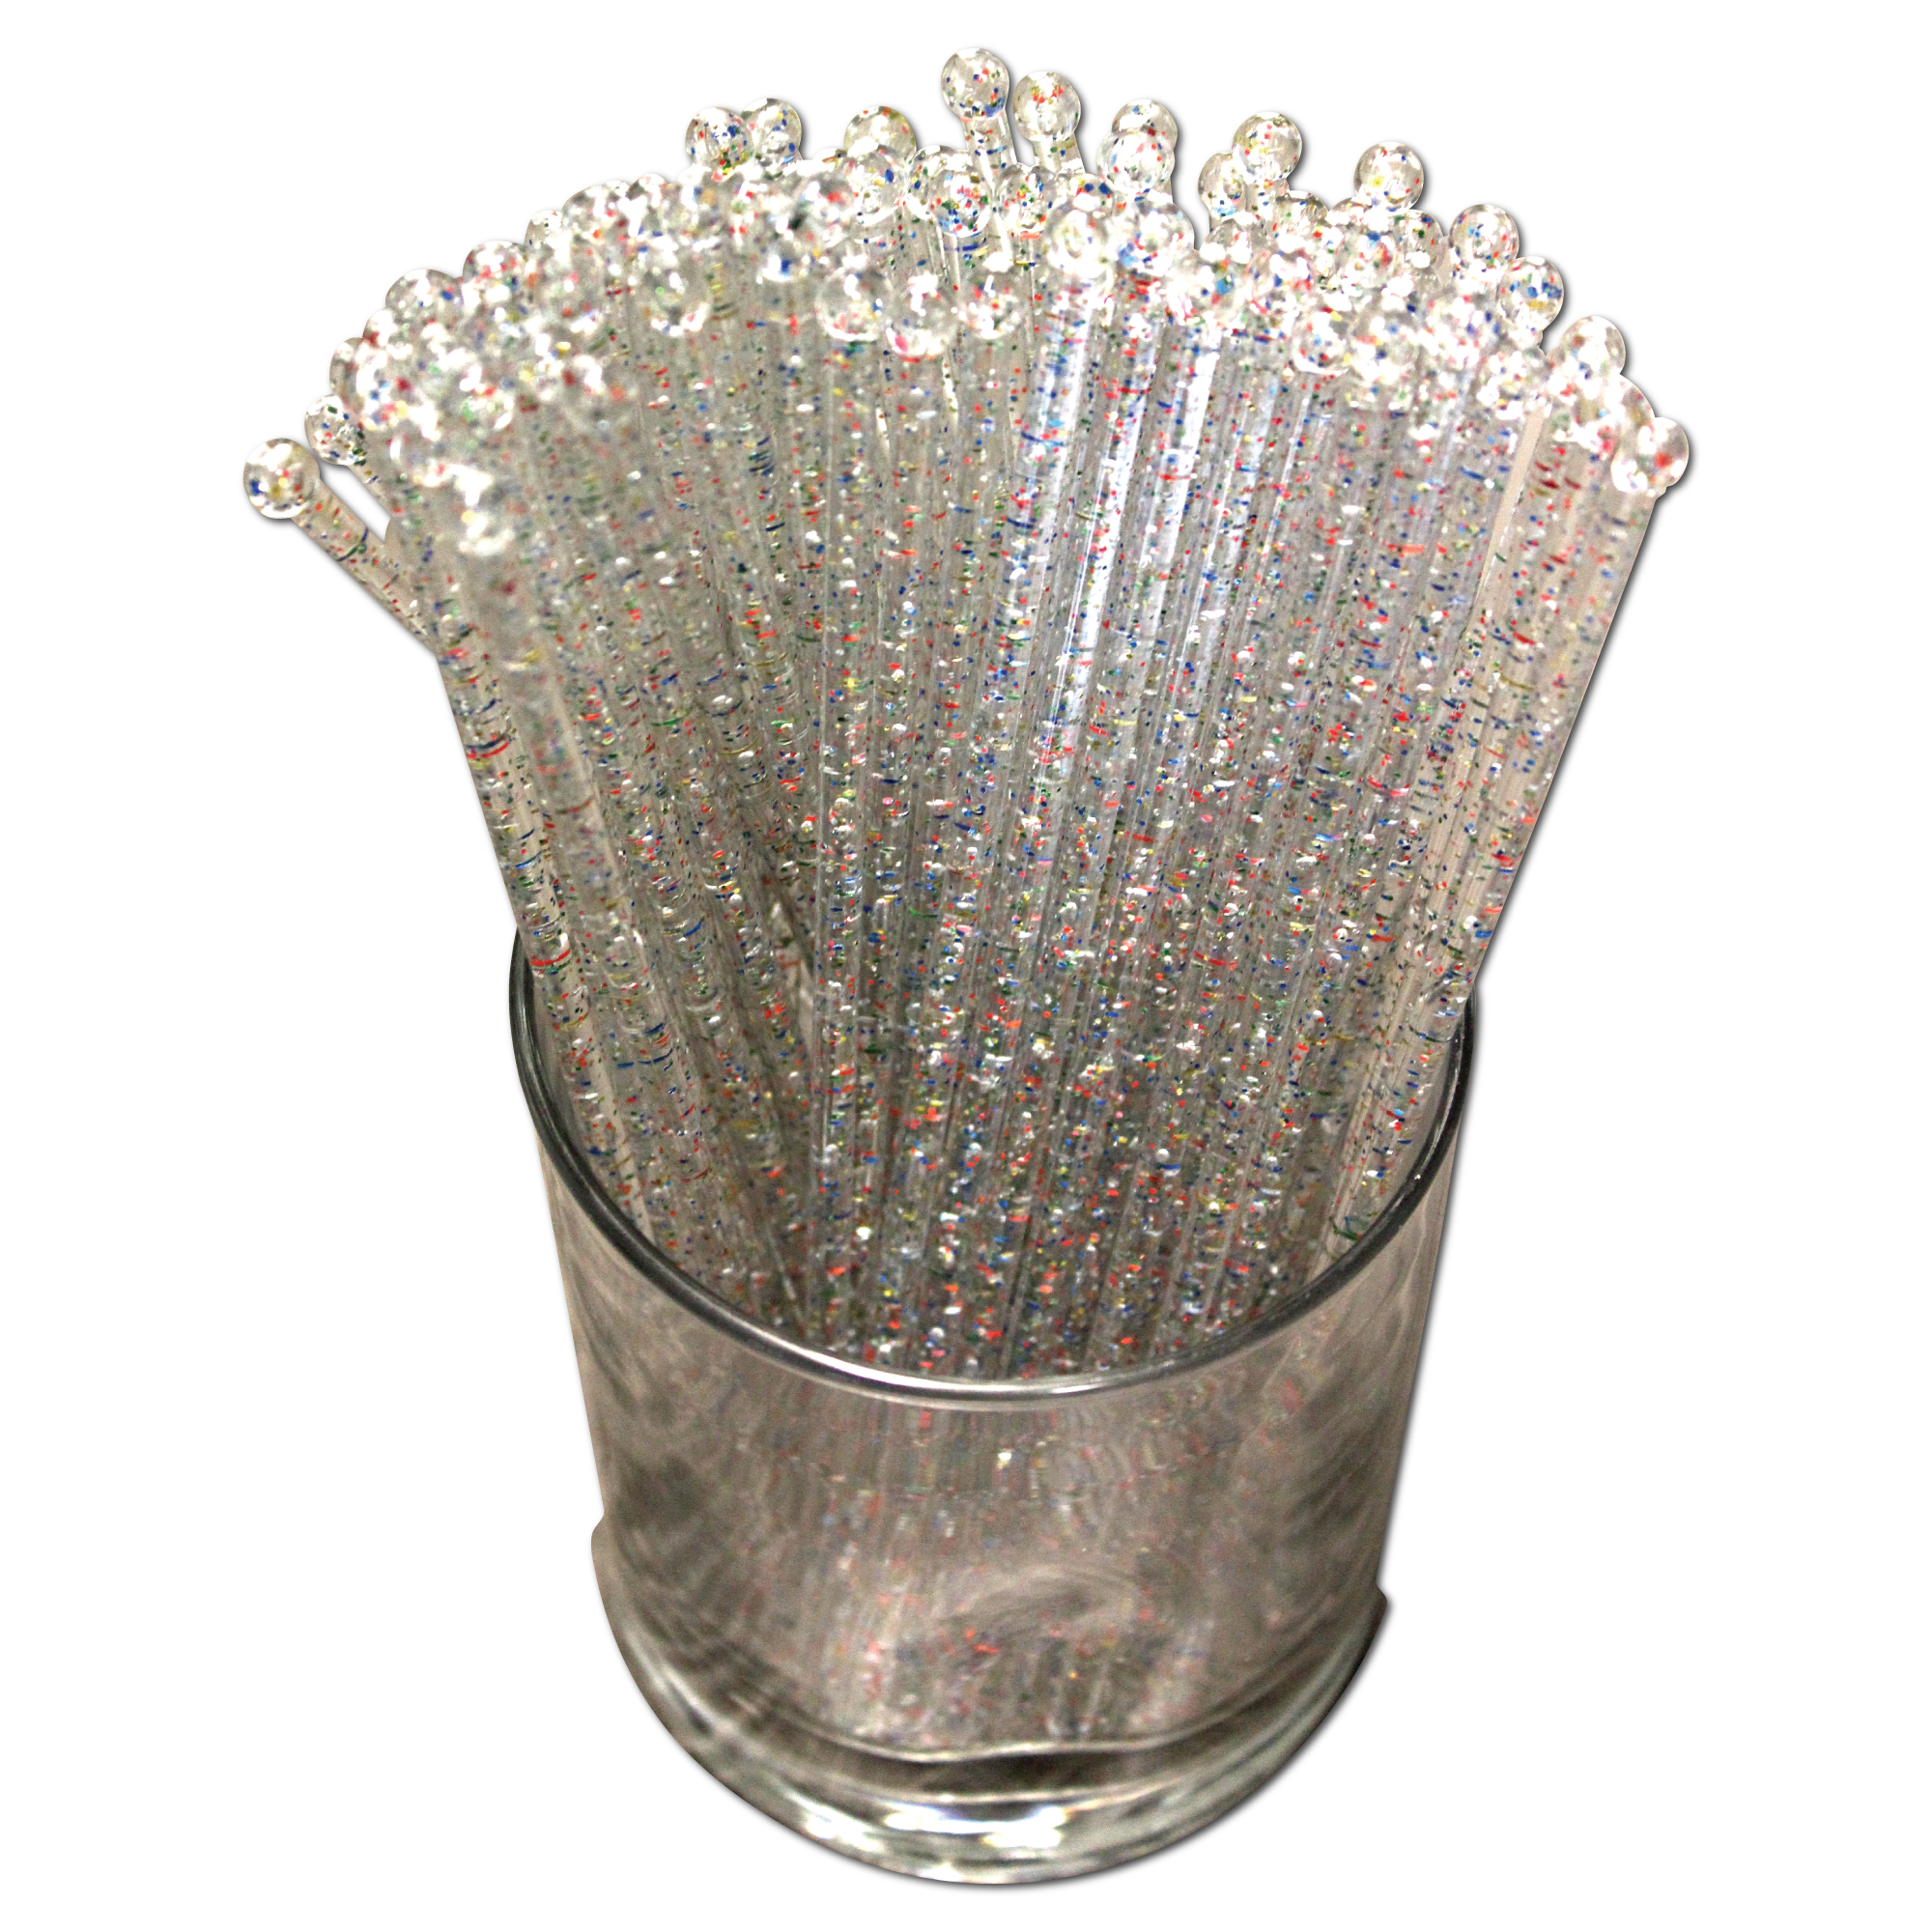 Made In USA Set of 48 Swizzle Sticks Crystal Royer 6 Spiral Beverage Stirrers